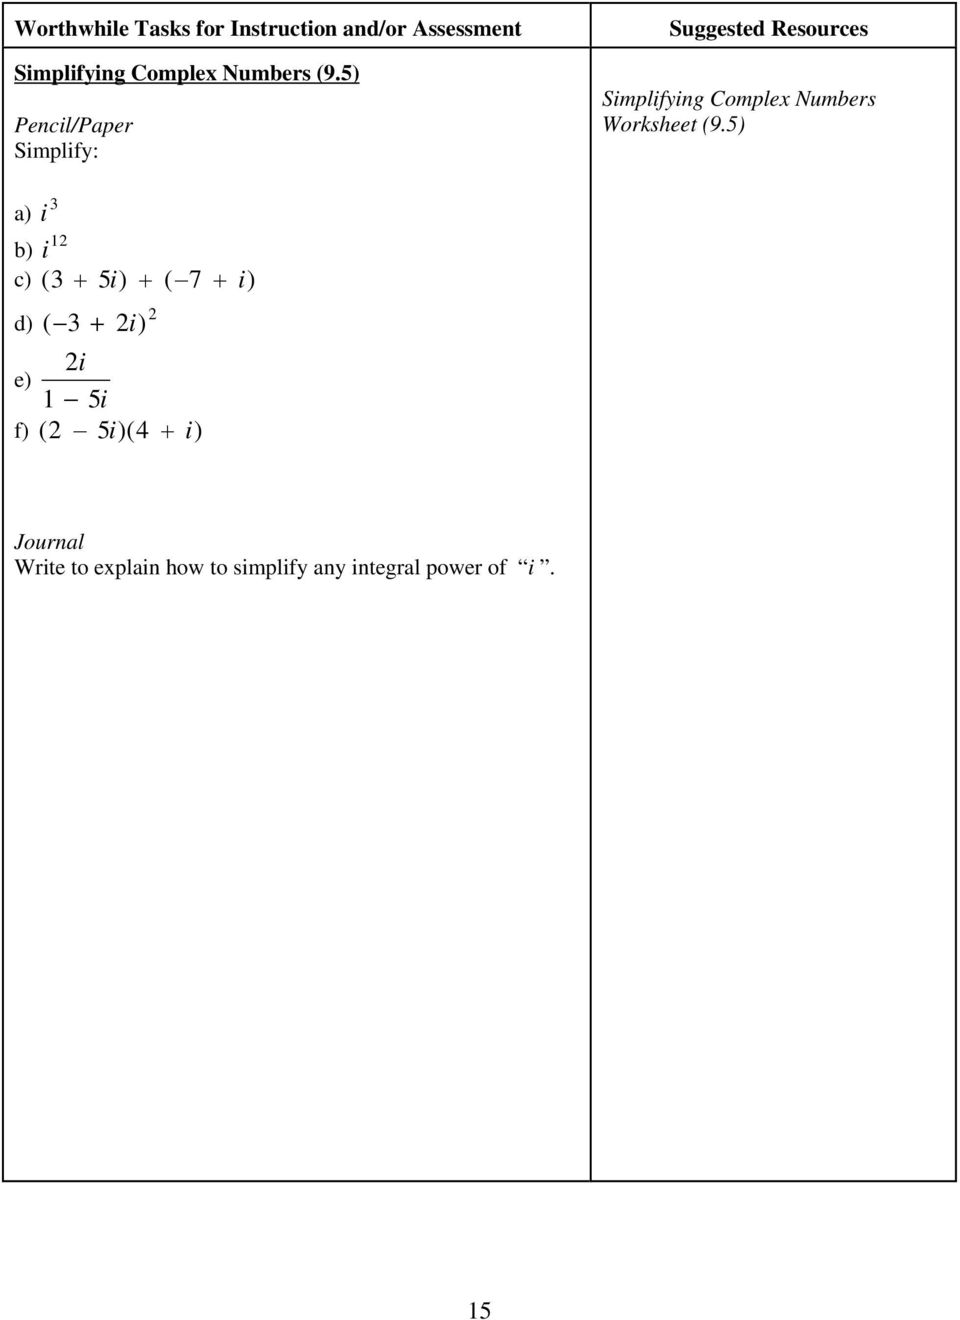 Worksheets Operations With Complex Numbers Worksheet unit two polar coordinates and complex numbers math 611b 15 hours pdf 5 pencilpaper simplify simplifying worksheet 9